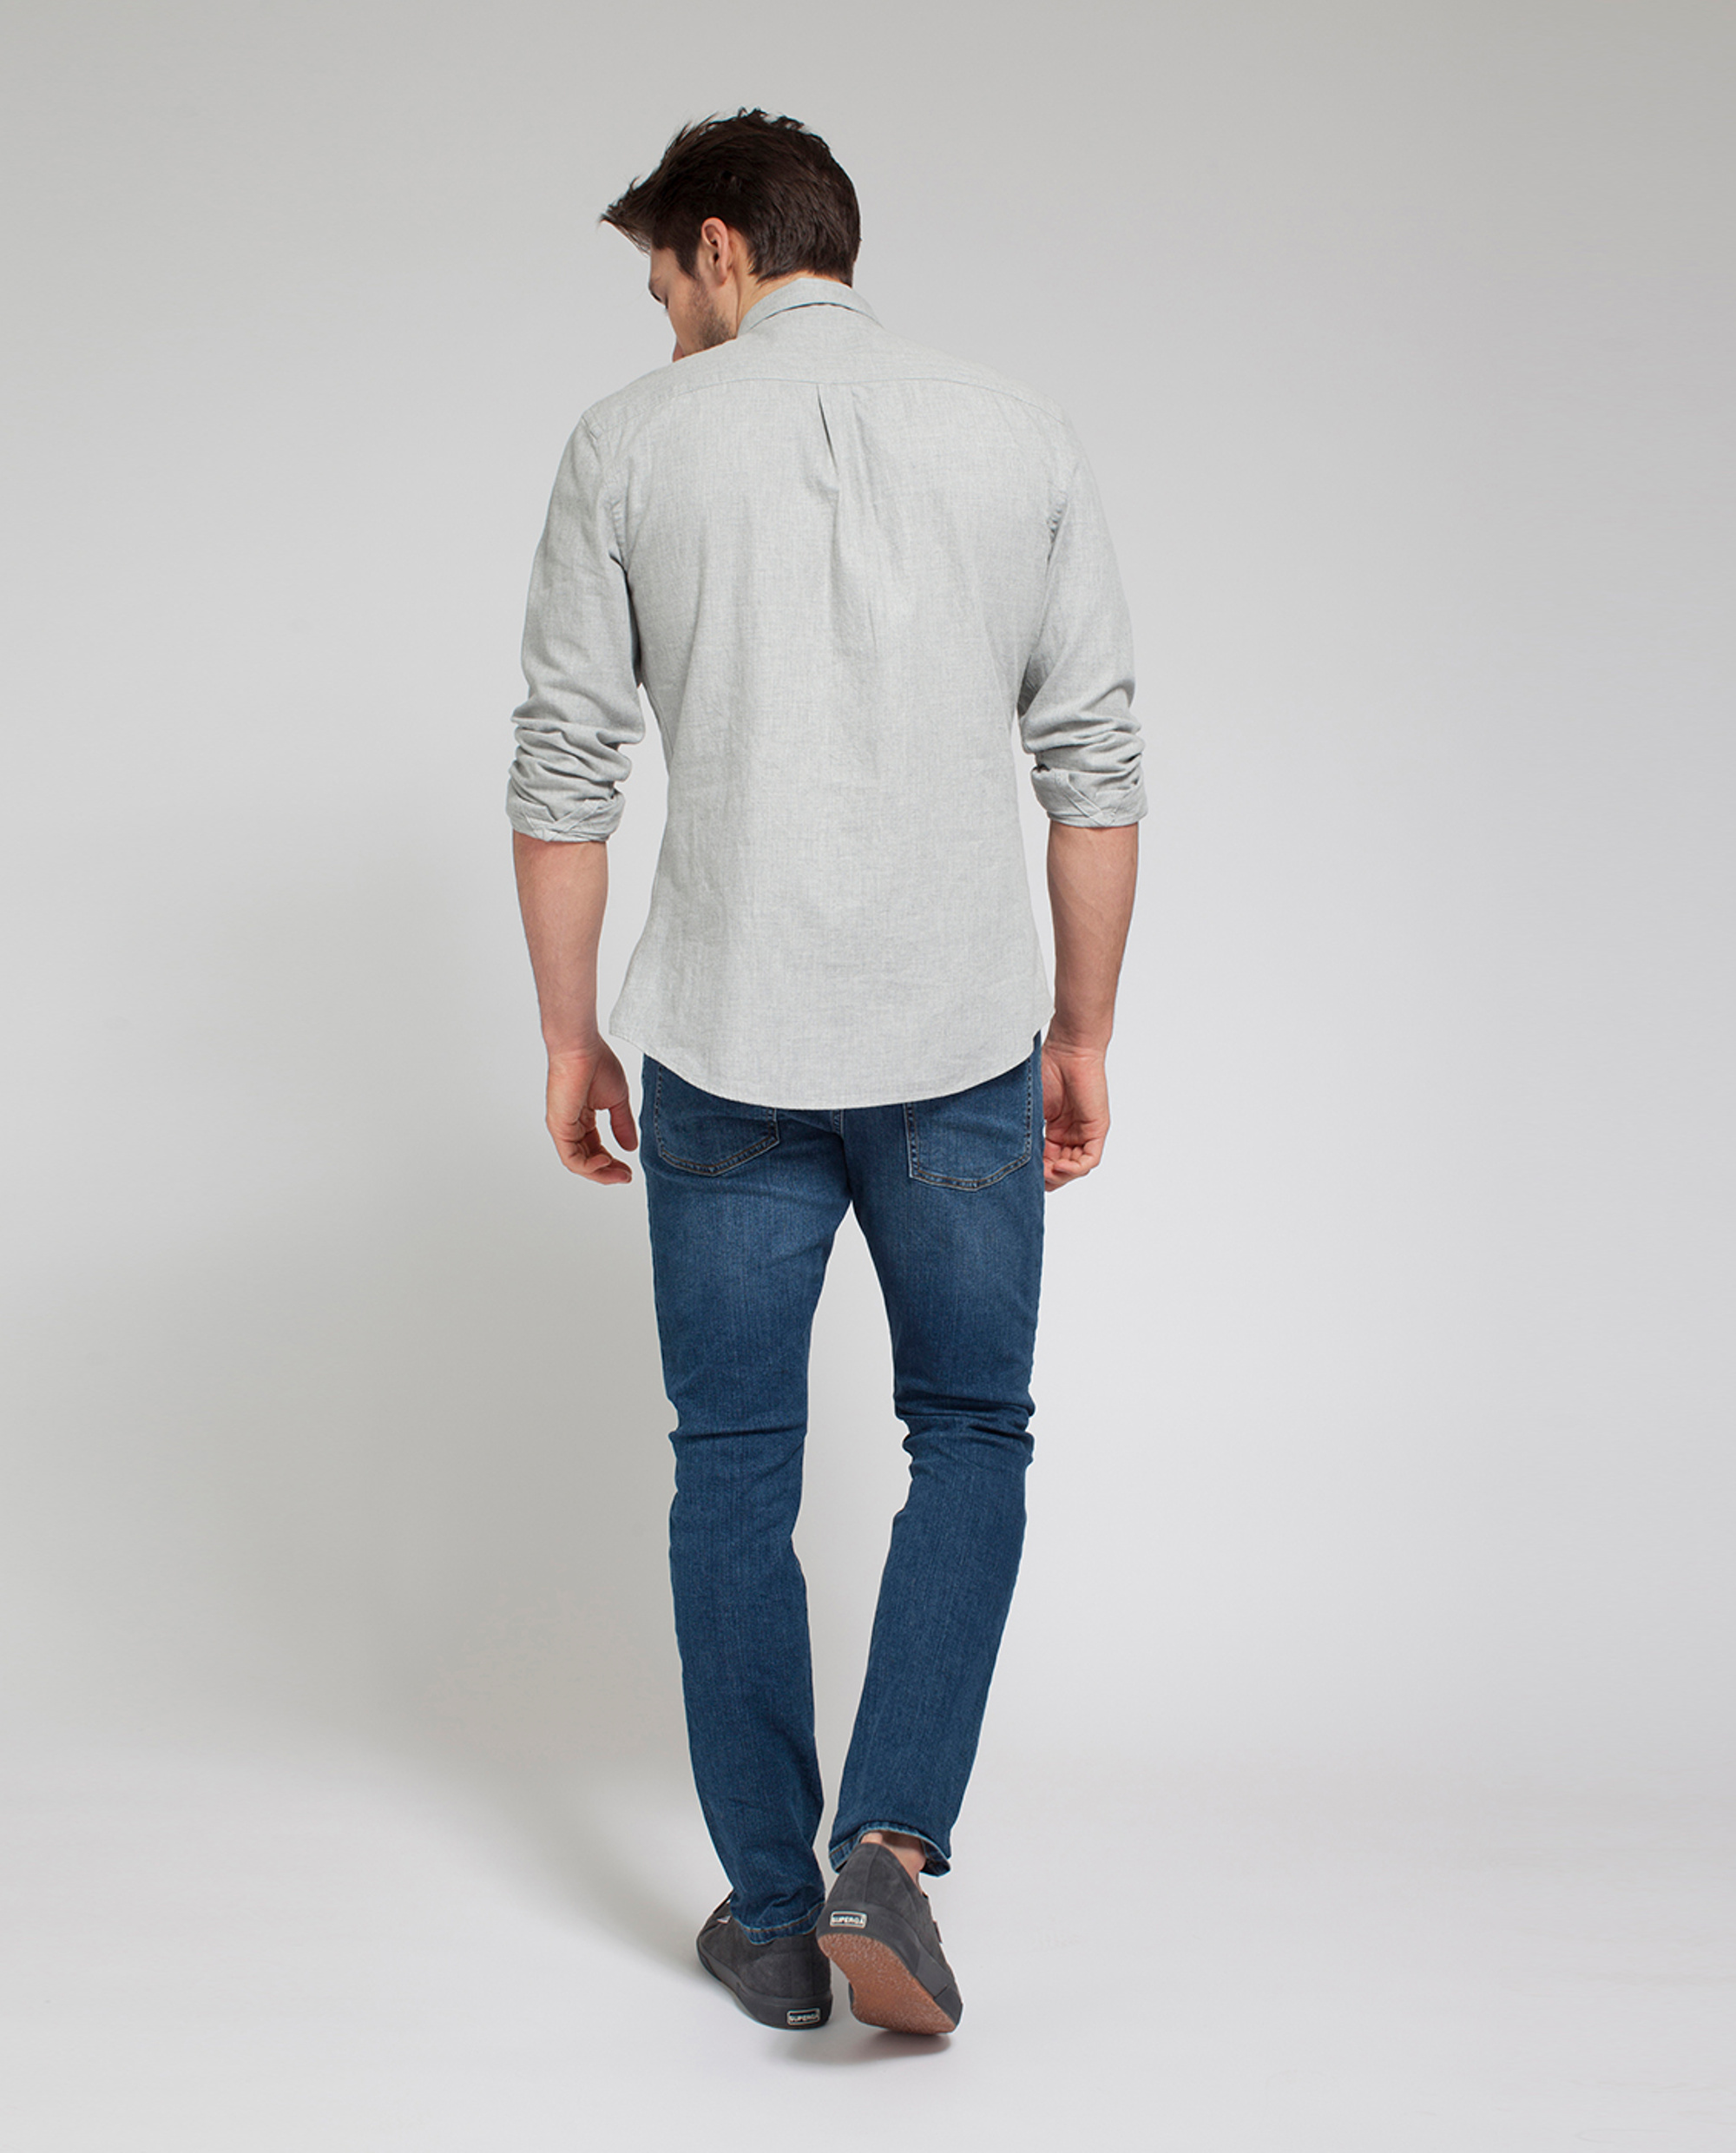 Peter Light Flannel Shirt, Light Warm Gray